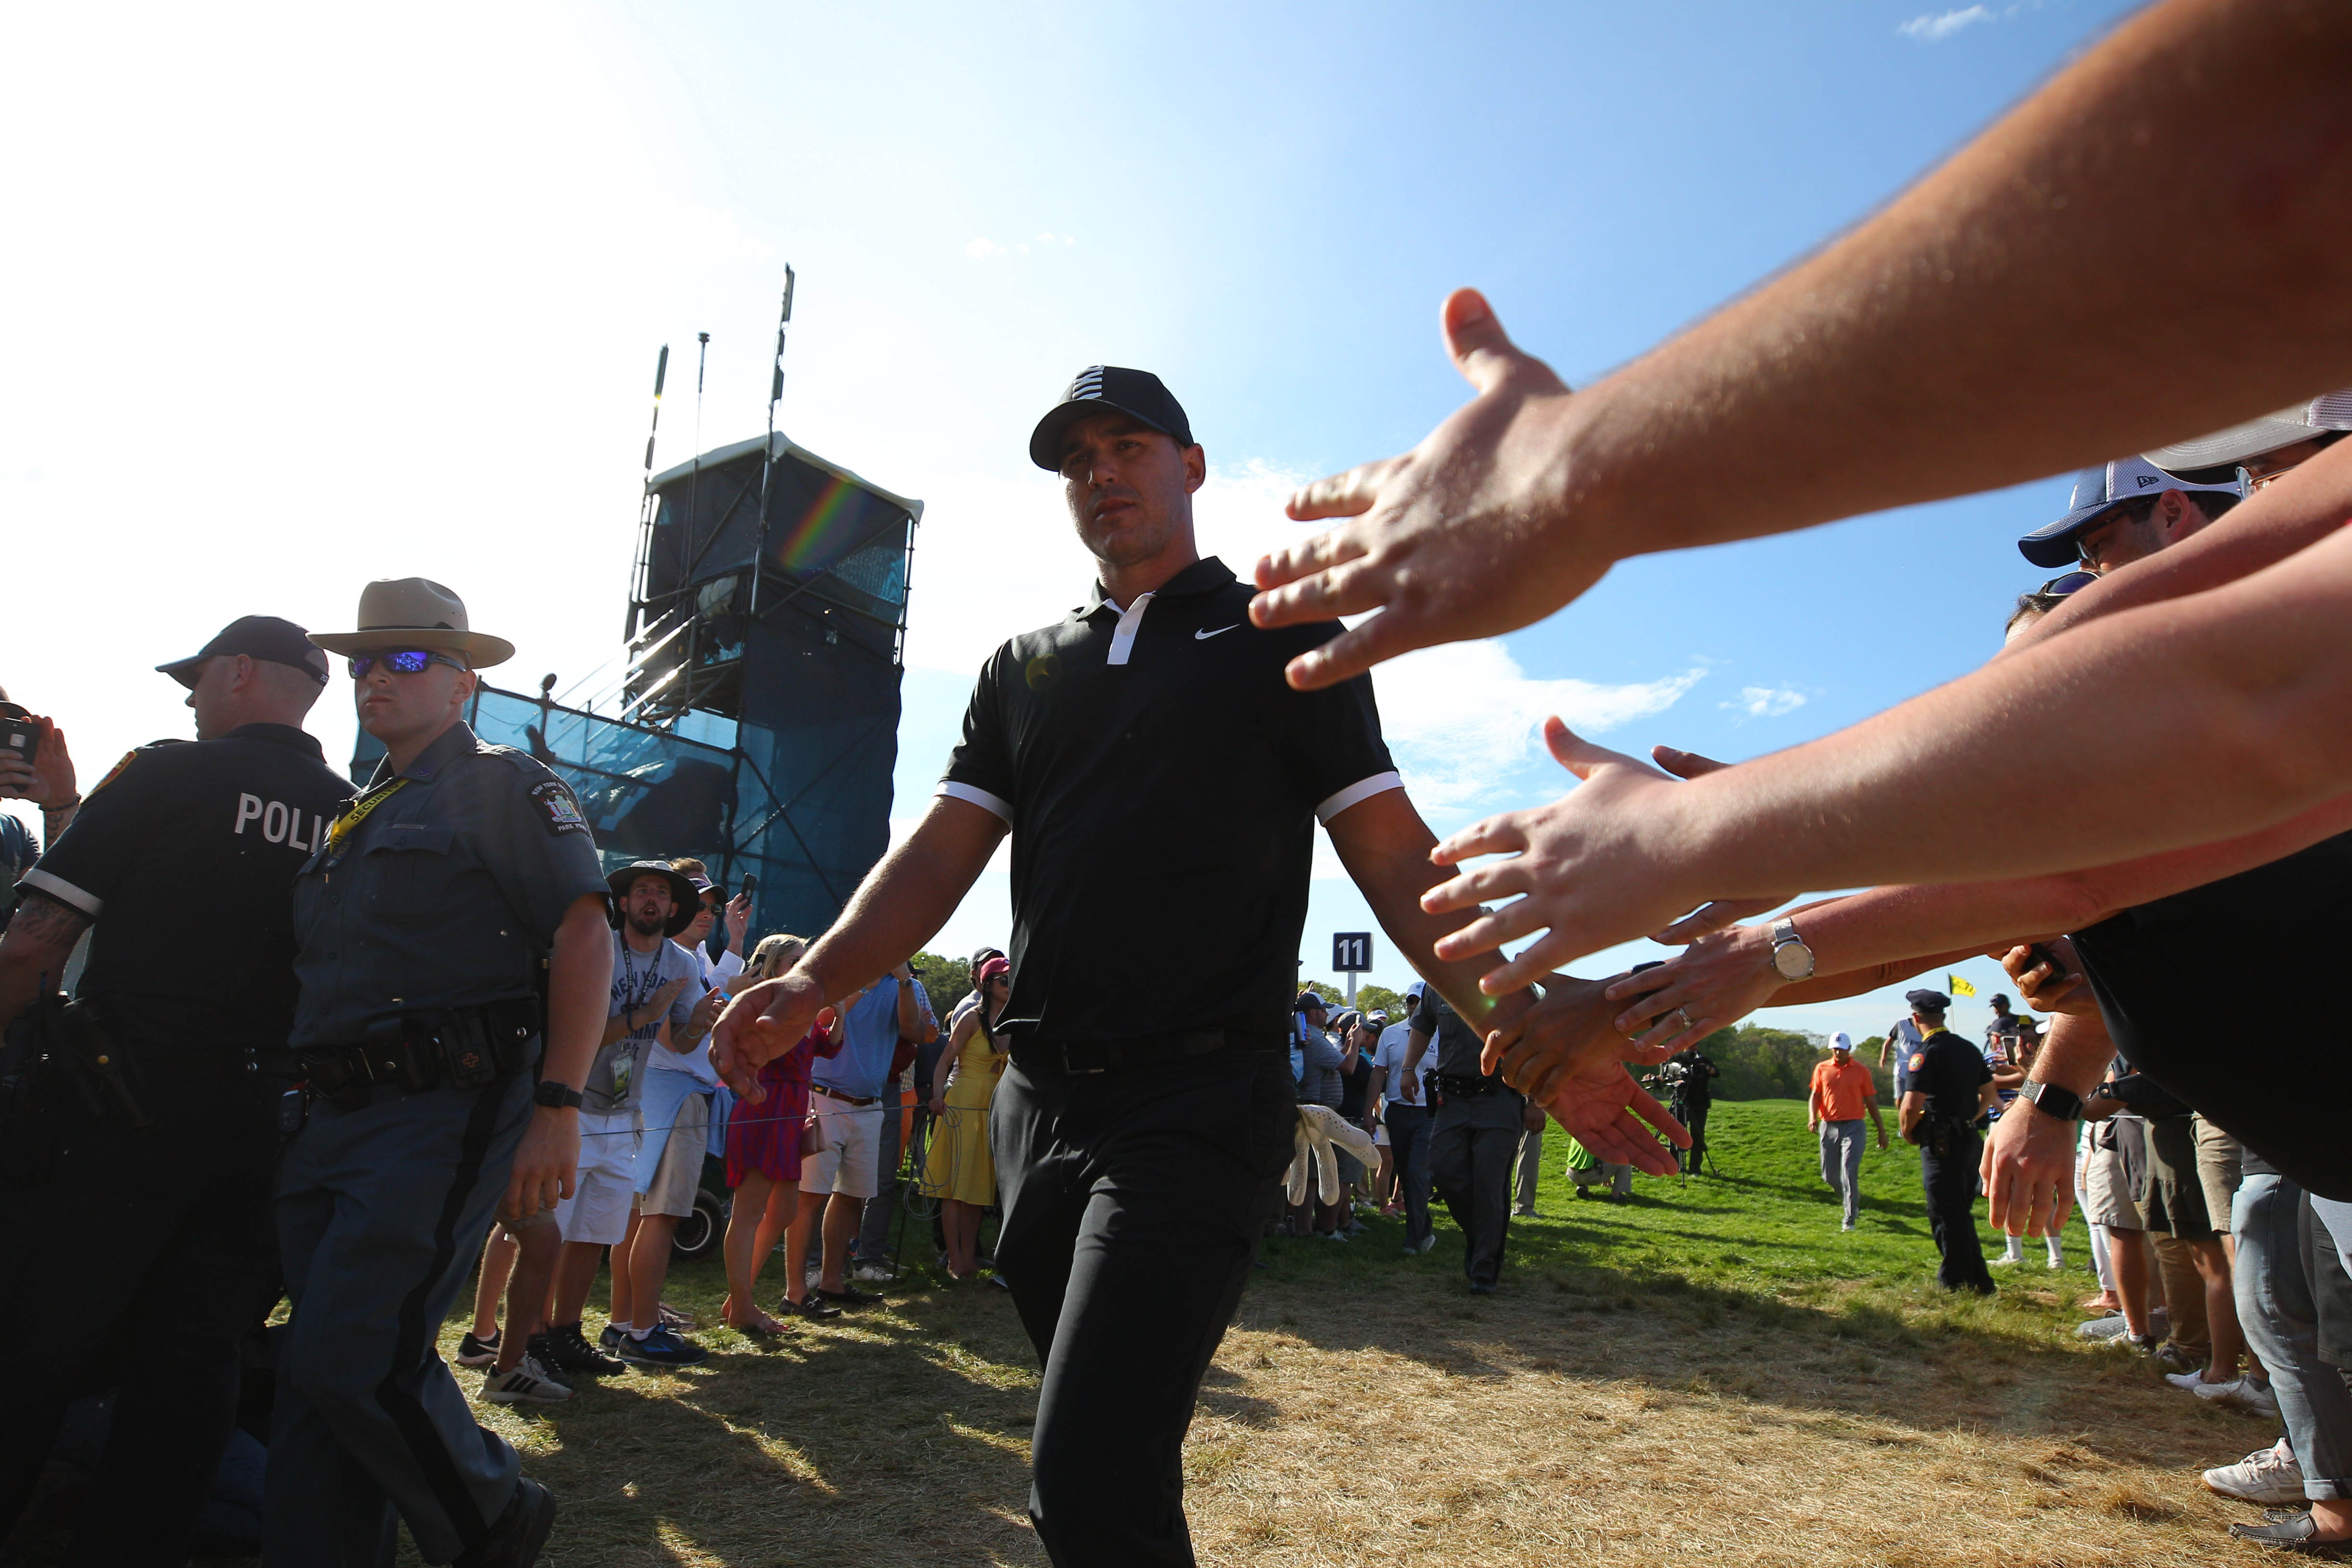 Sunday at the PGA will be a race for 2nd place thanks to Brooks Koepka